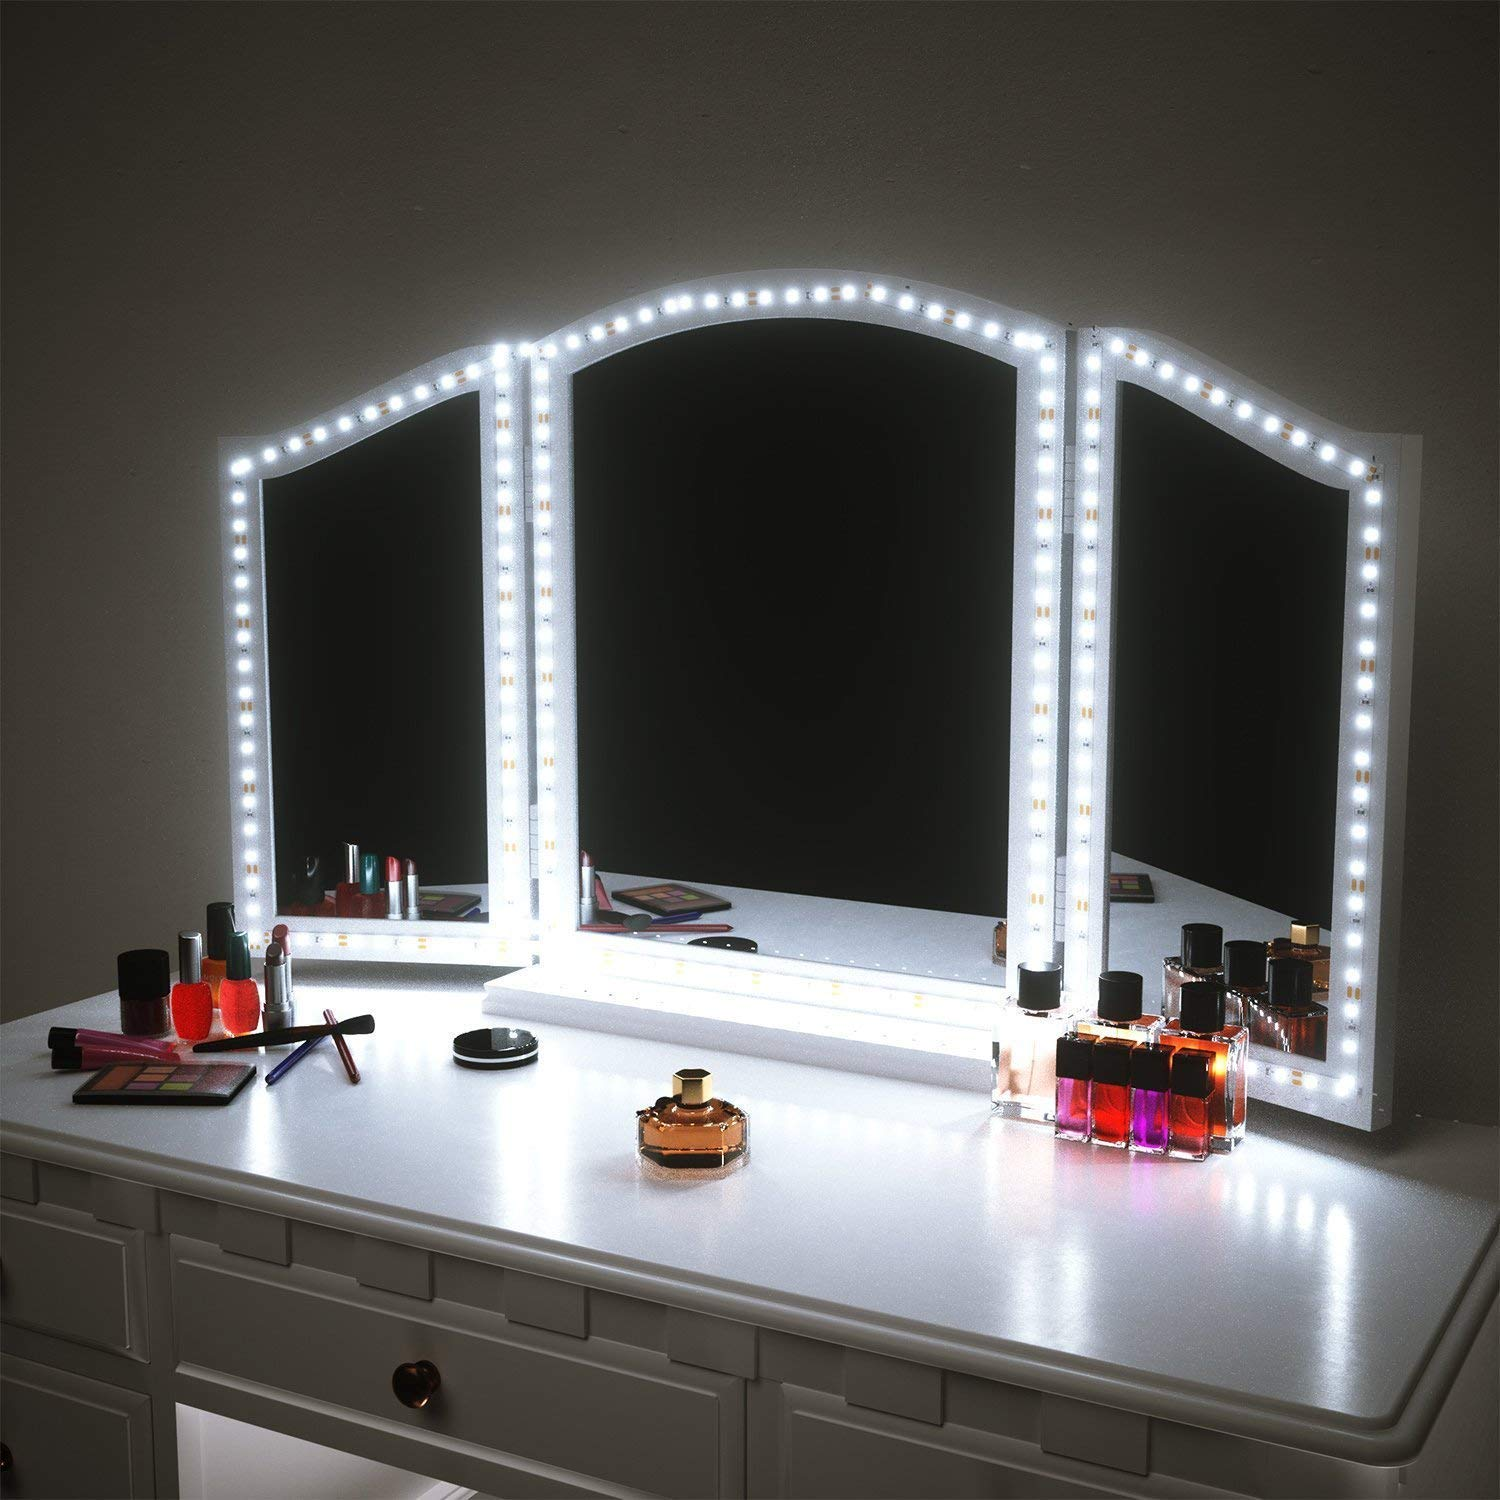 LED Vanity Mirror Lights Kit for Makeup Dressing Table Vanity Set 13ft Flexible LED Light Strip 6000K Daylight White with Dimmer and Power Supply, DIY Mirror, Mirror not Included by PANGTON VILLA (Image #1)